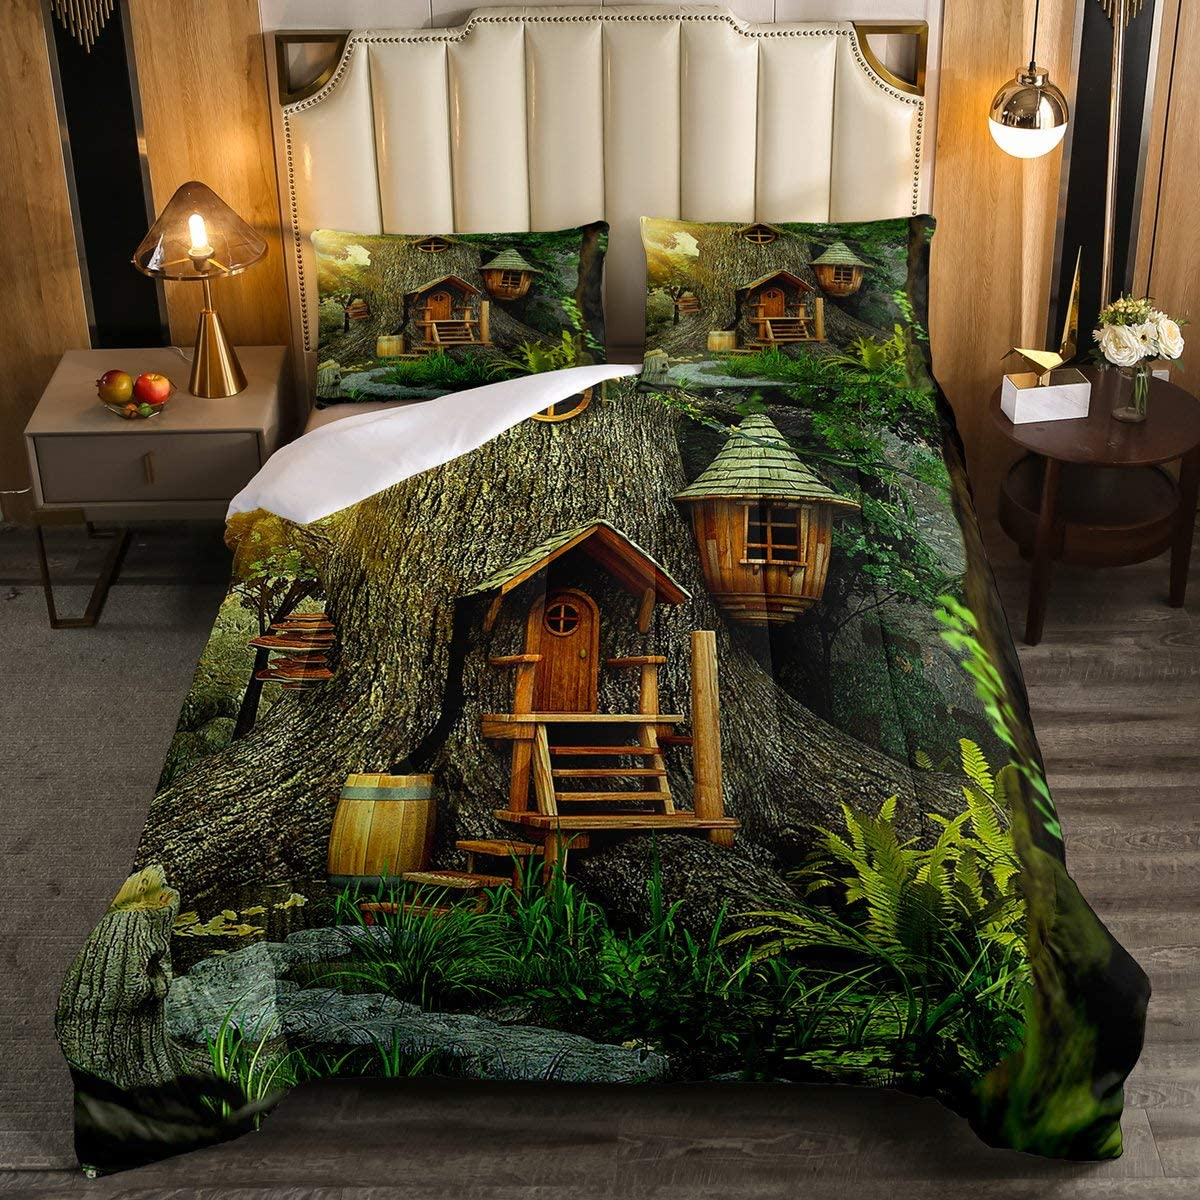 Woodland Beddinig Set Tree House Spring new work one after another Max 67% OFF for Comforter Bo Decor Kids